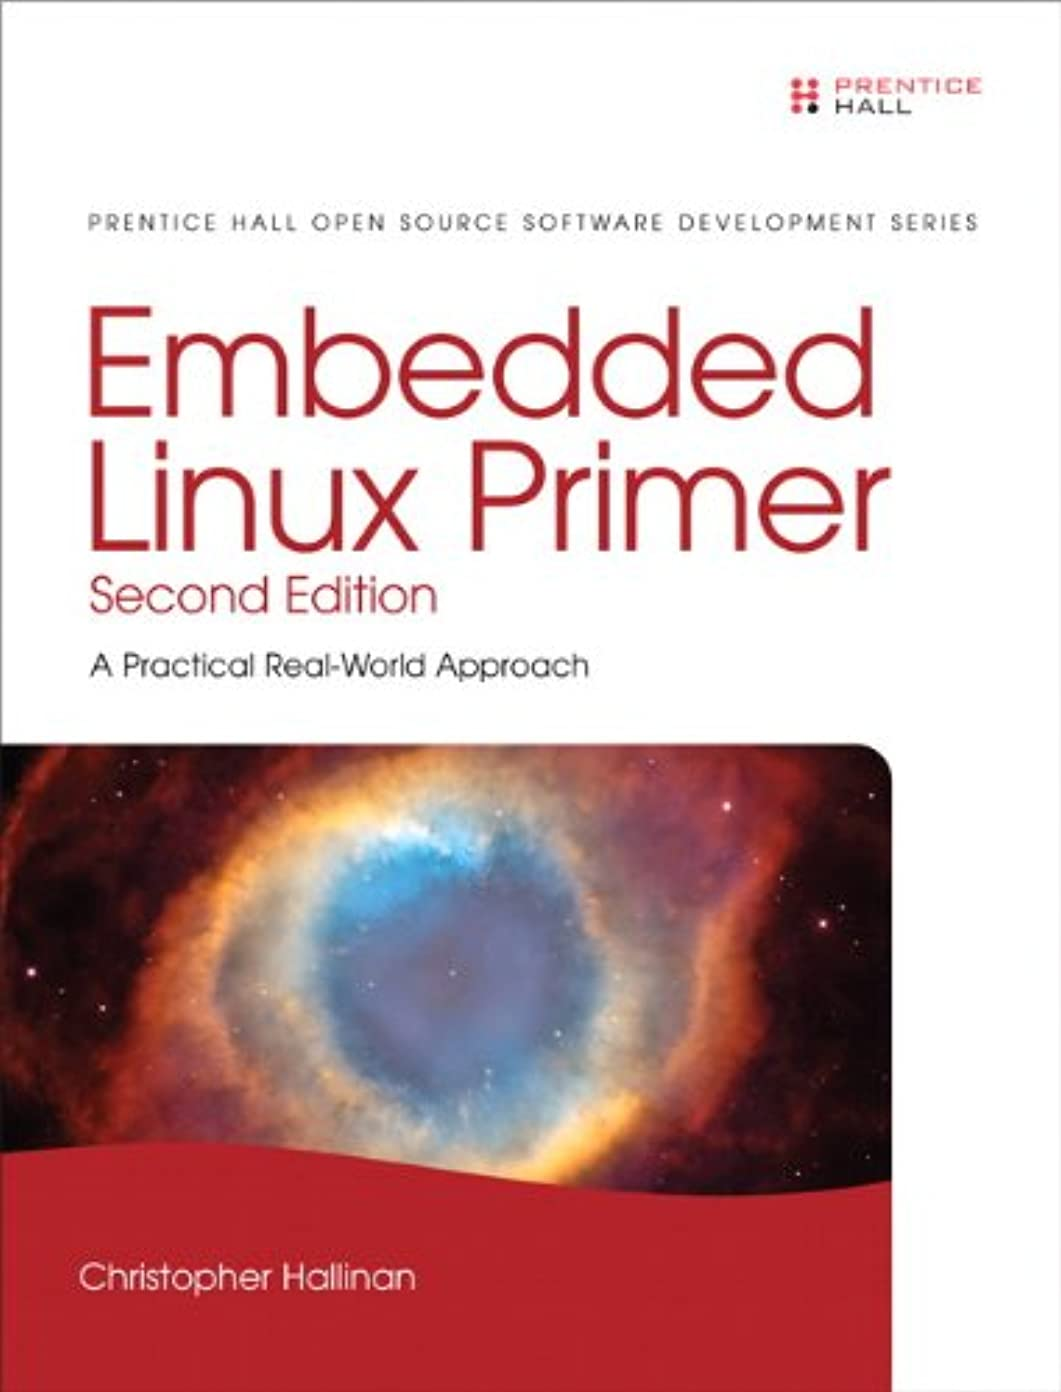 回路必要パワーセルEmbedded Linux Primer: A Practical Real-World Approach (Pearson Open Source Software Development Series) (English Edition)